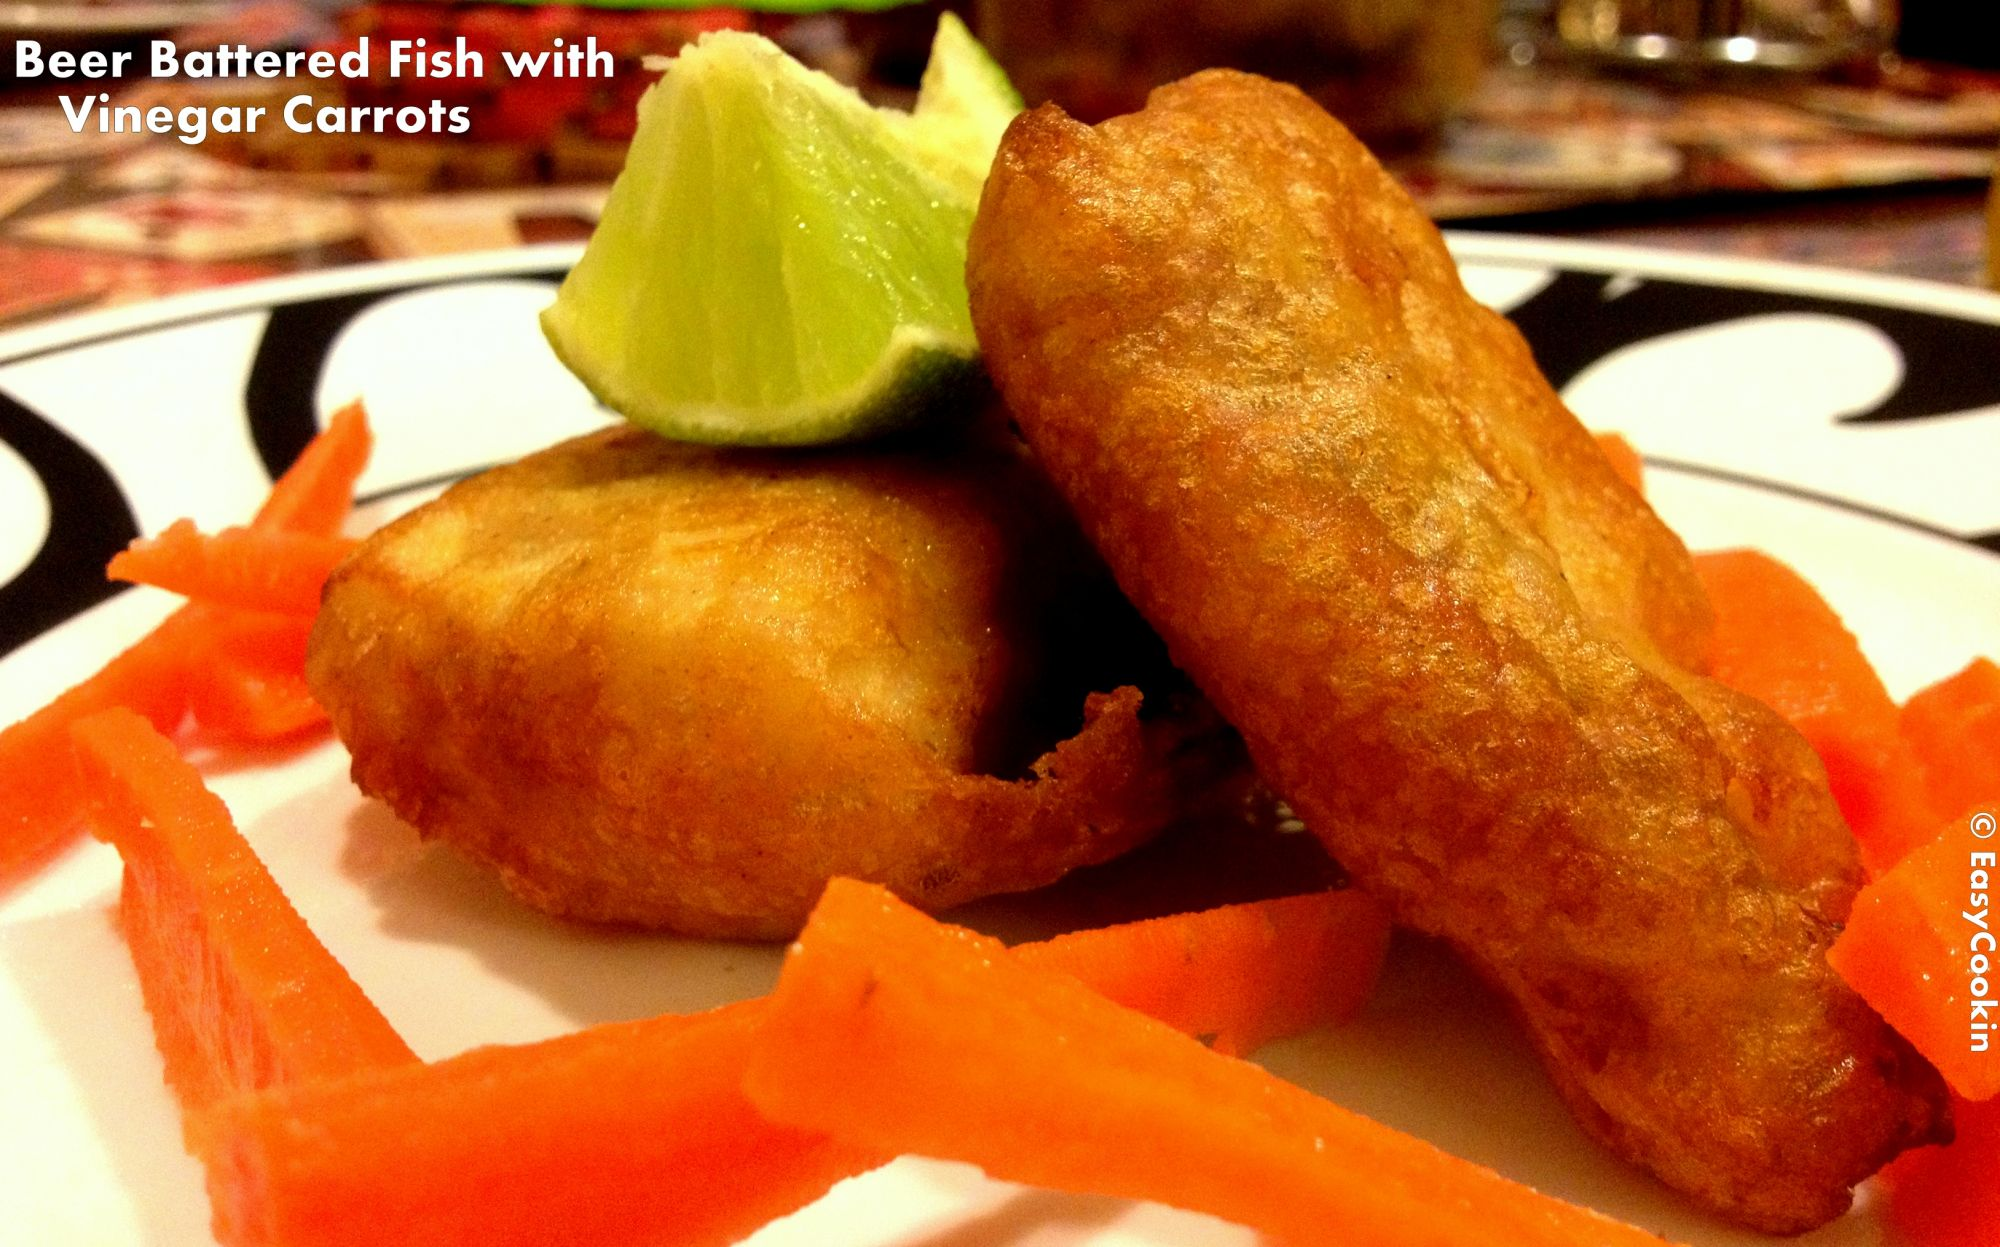 Beer Battered Fish With Vinegar Carrots Recipe 4 1 5